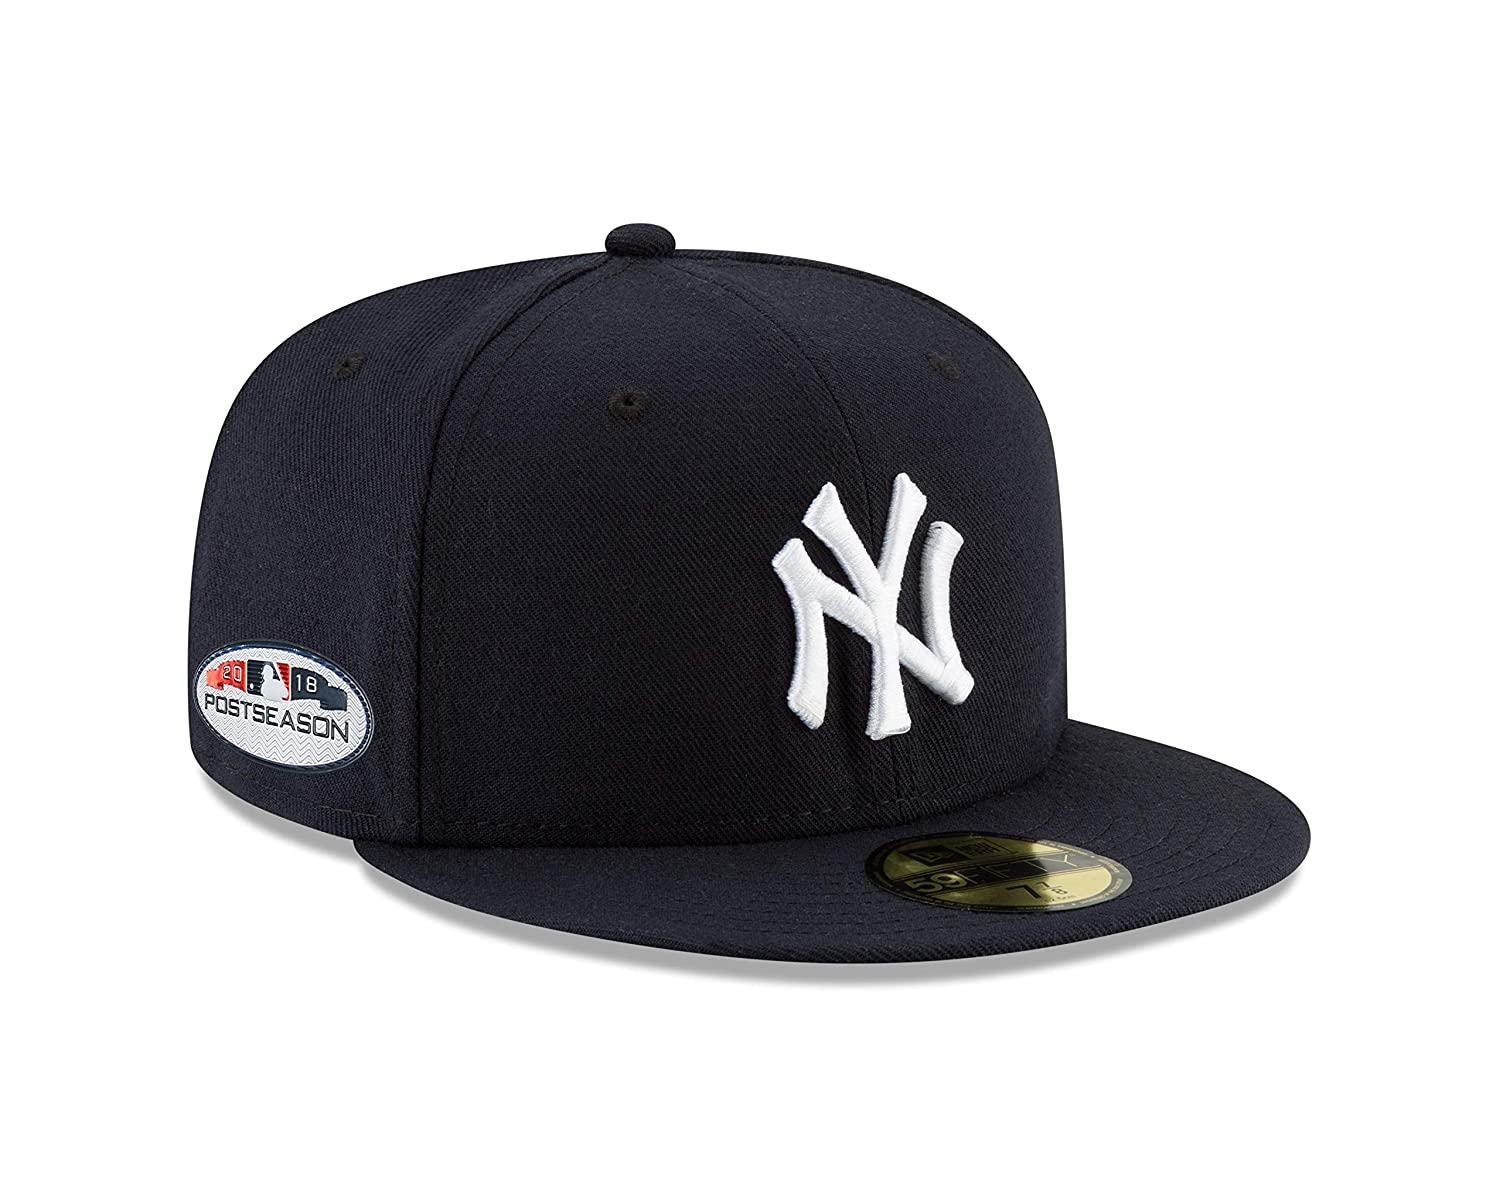 newest d3dc5 1cdd2 Amazon.com   New Era New York Yankees 2018 Postseason Side Patch 59FIFTY  Fitted Hat - Navy (7 1 8)   Sports   Outdoors